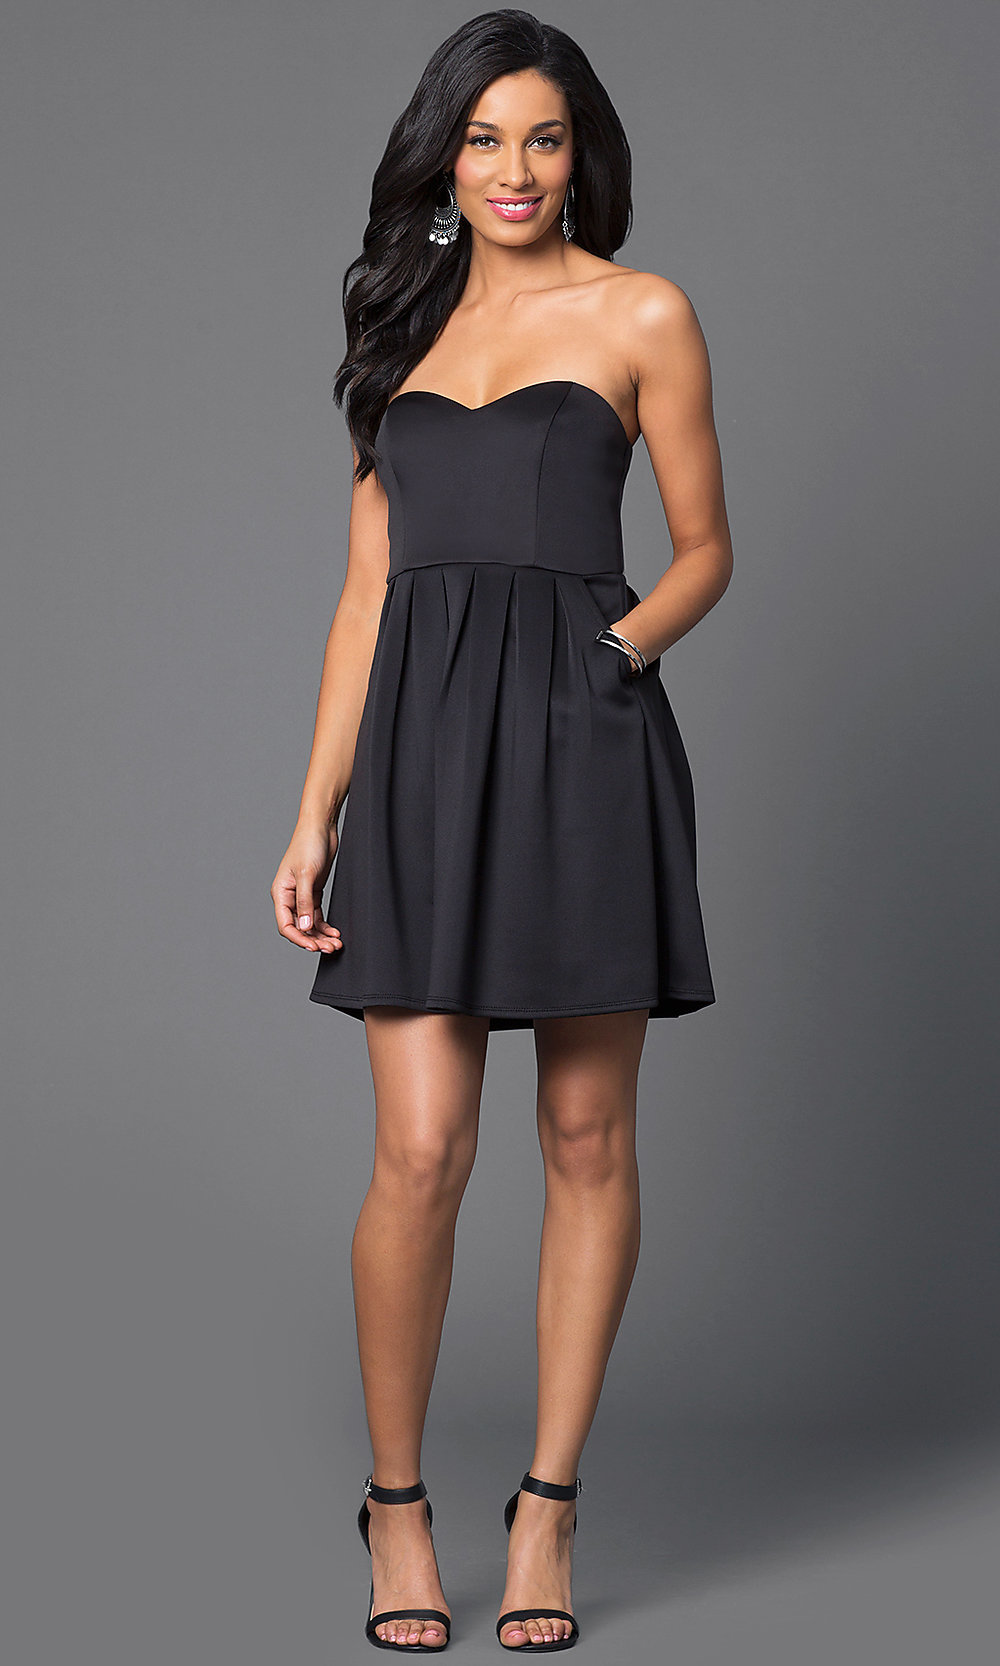 Short Strapless Black Party Dress - PromGirl